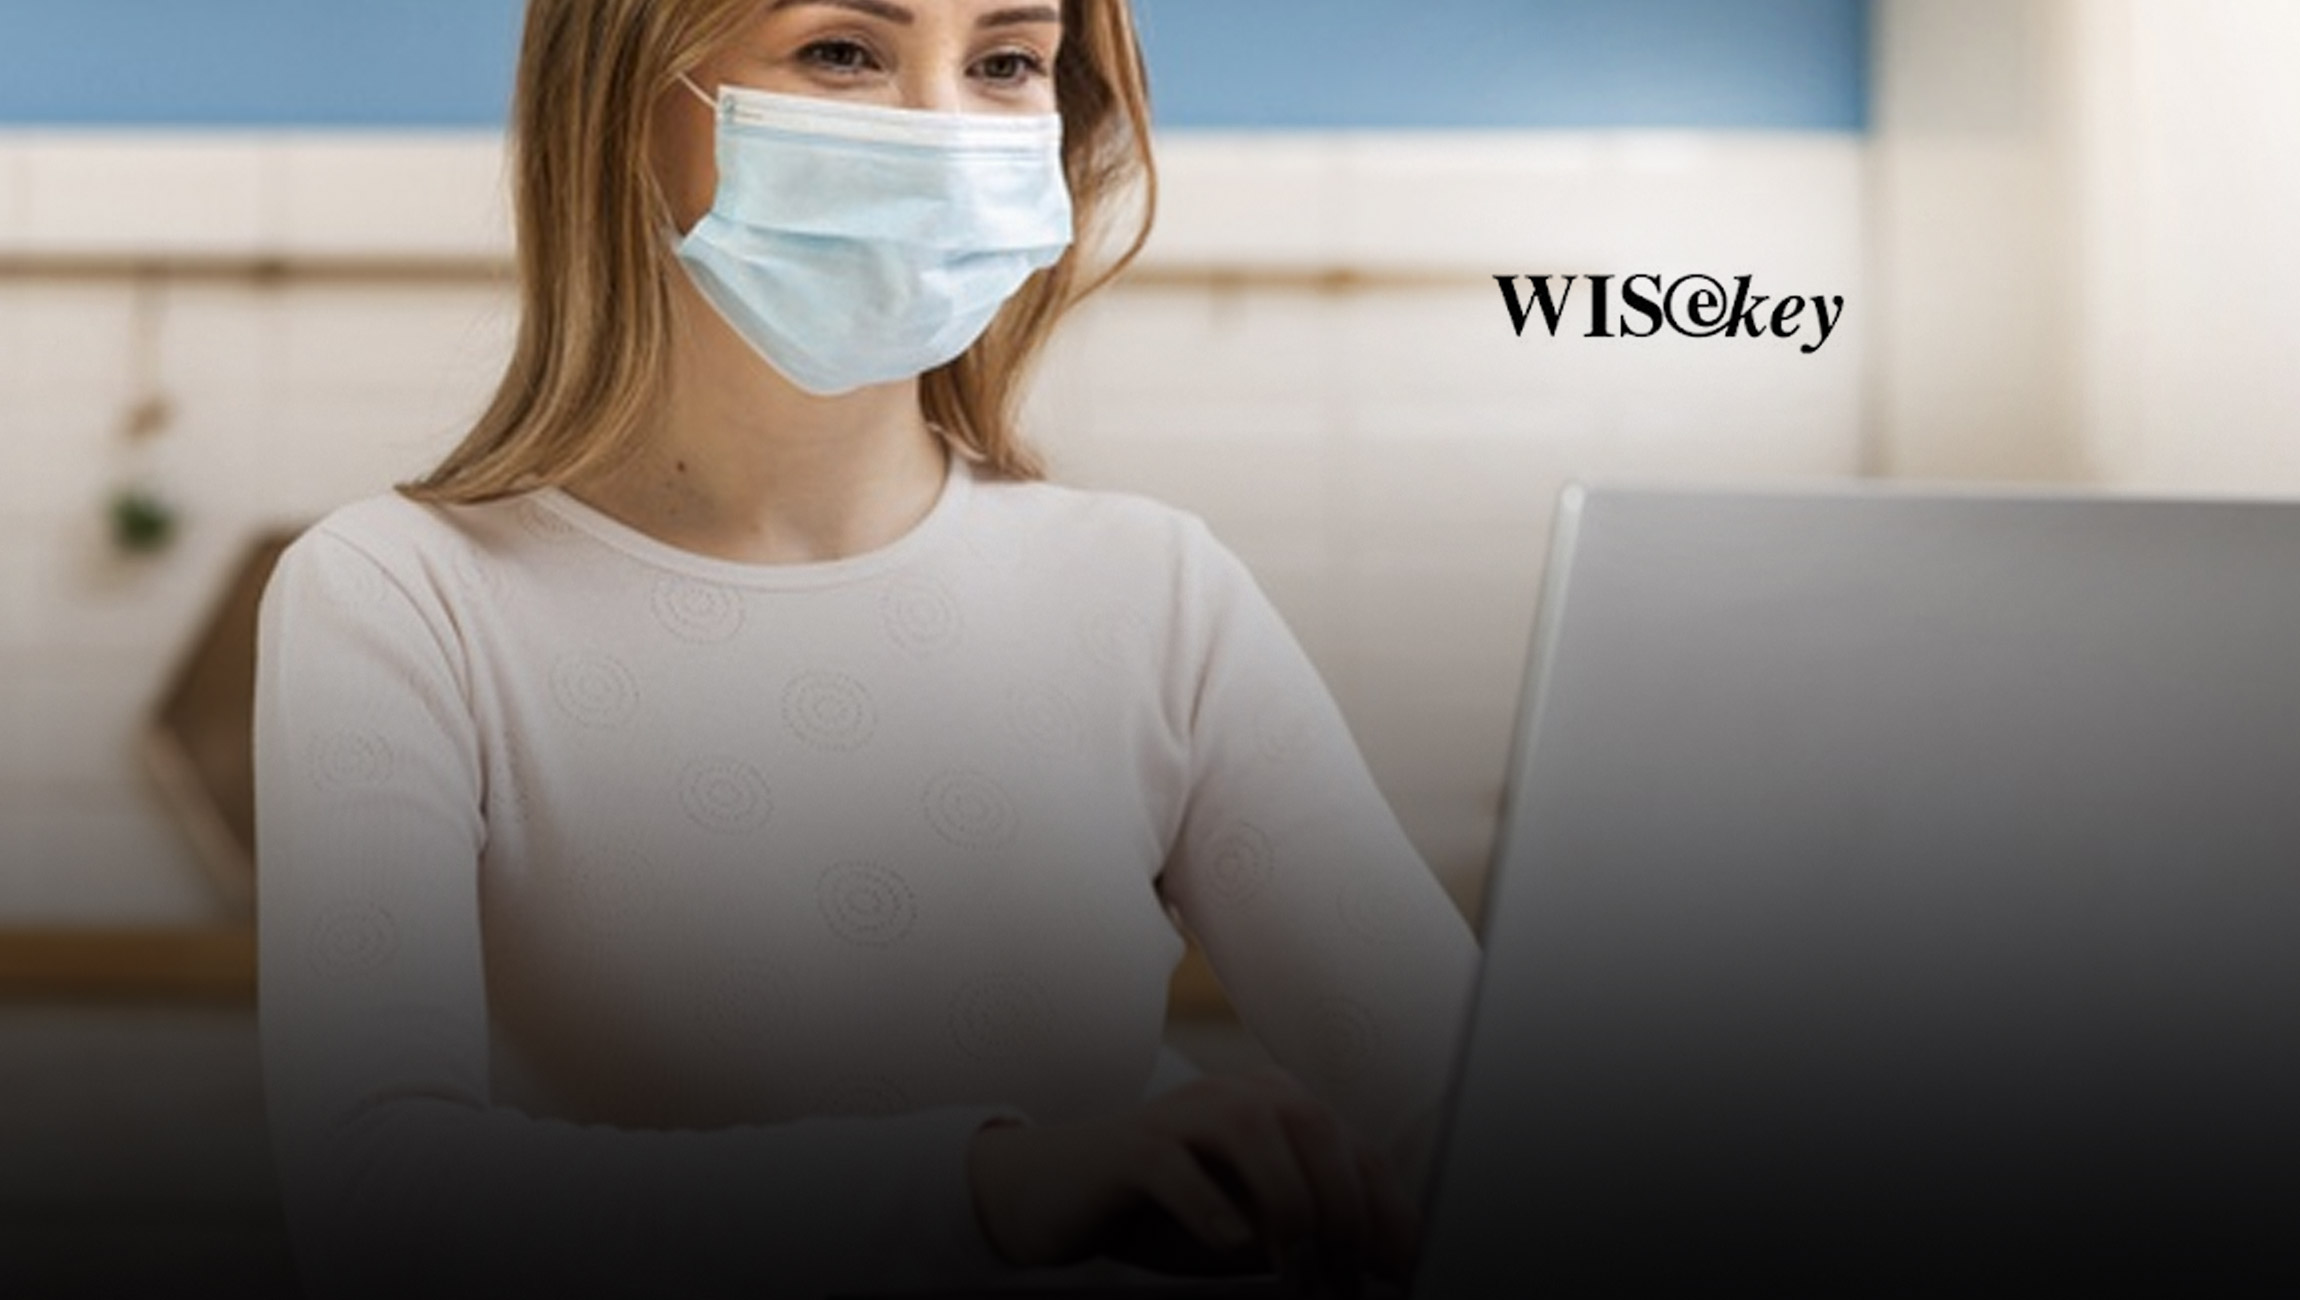 WISeKey and Arago Announce Unique AI Based Risk Management Approach to Build a Fully Secured Ecosystem for Managing COVID-19 Pandemic